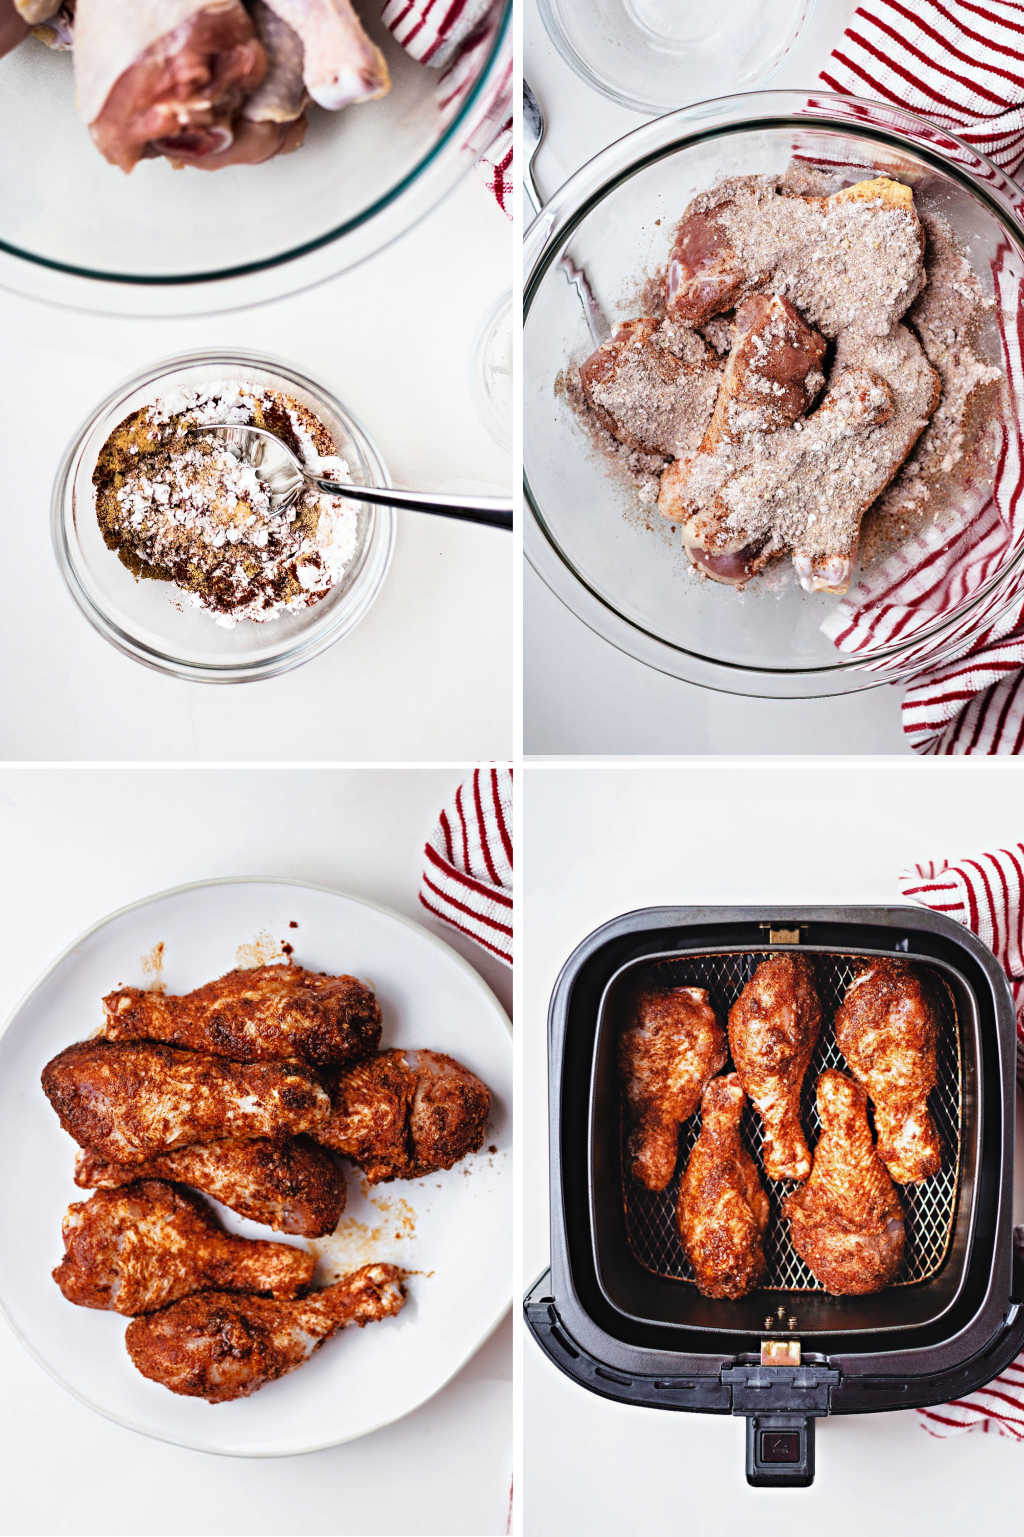 process steps for preparing air fryer chicken legs.